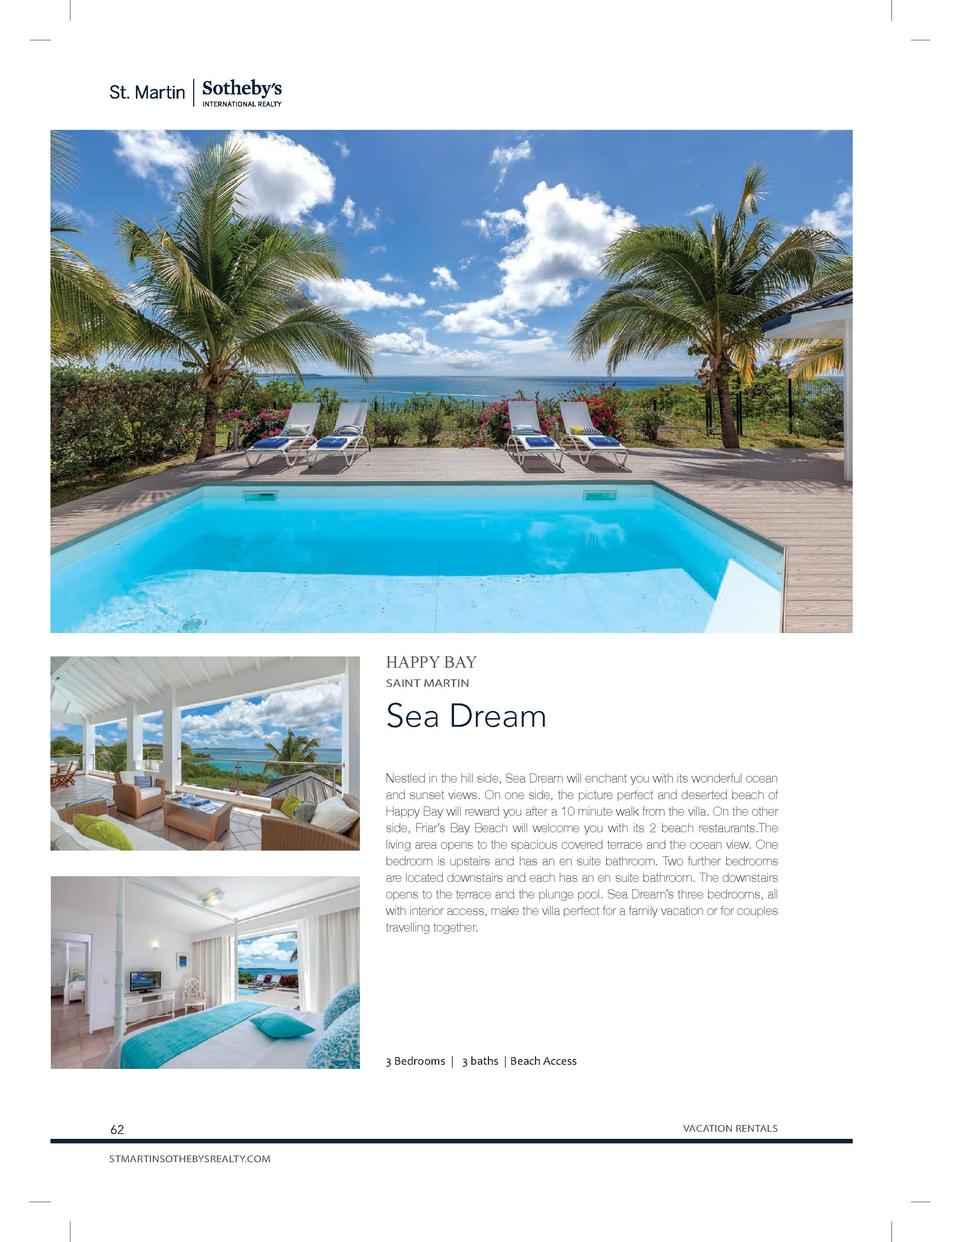 HAPPY BAY SAINT MARTIN  Sea Dream Nestled in the hill side, Sea Dream will enchant you with its wonderful ocean and sunset...